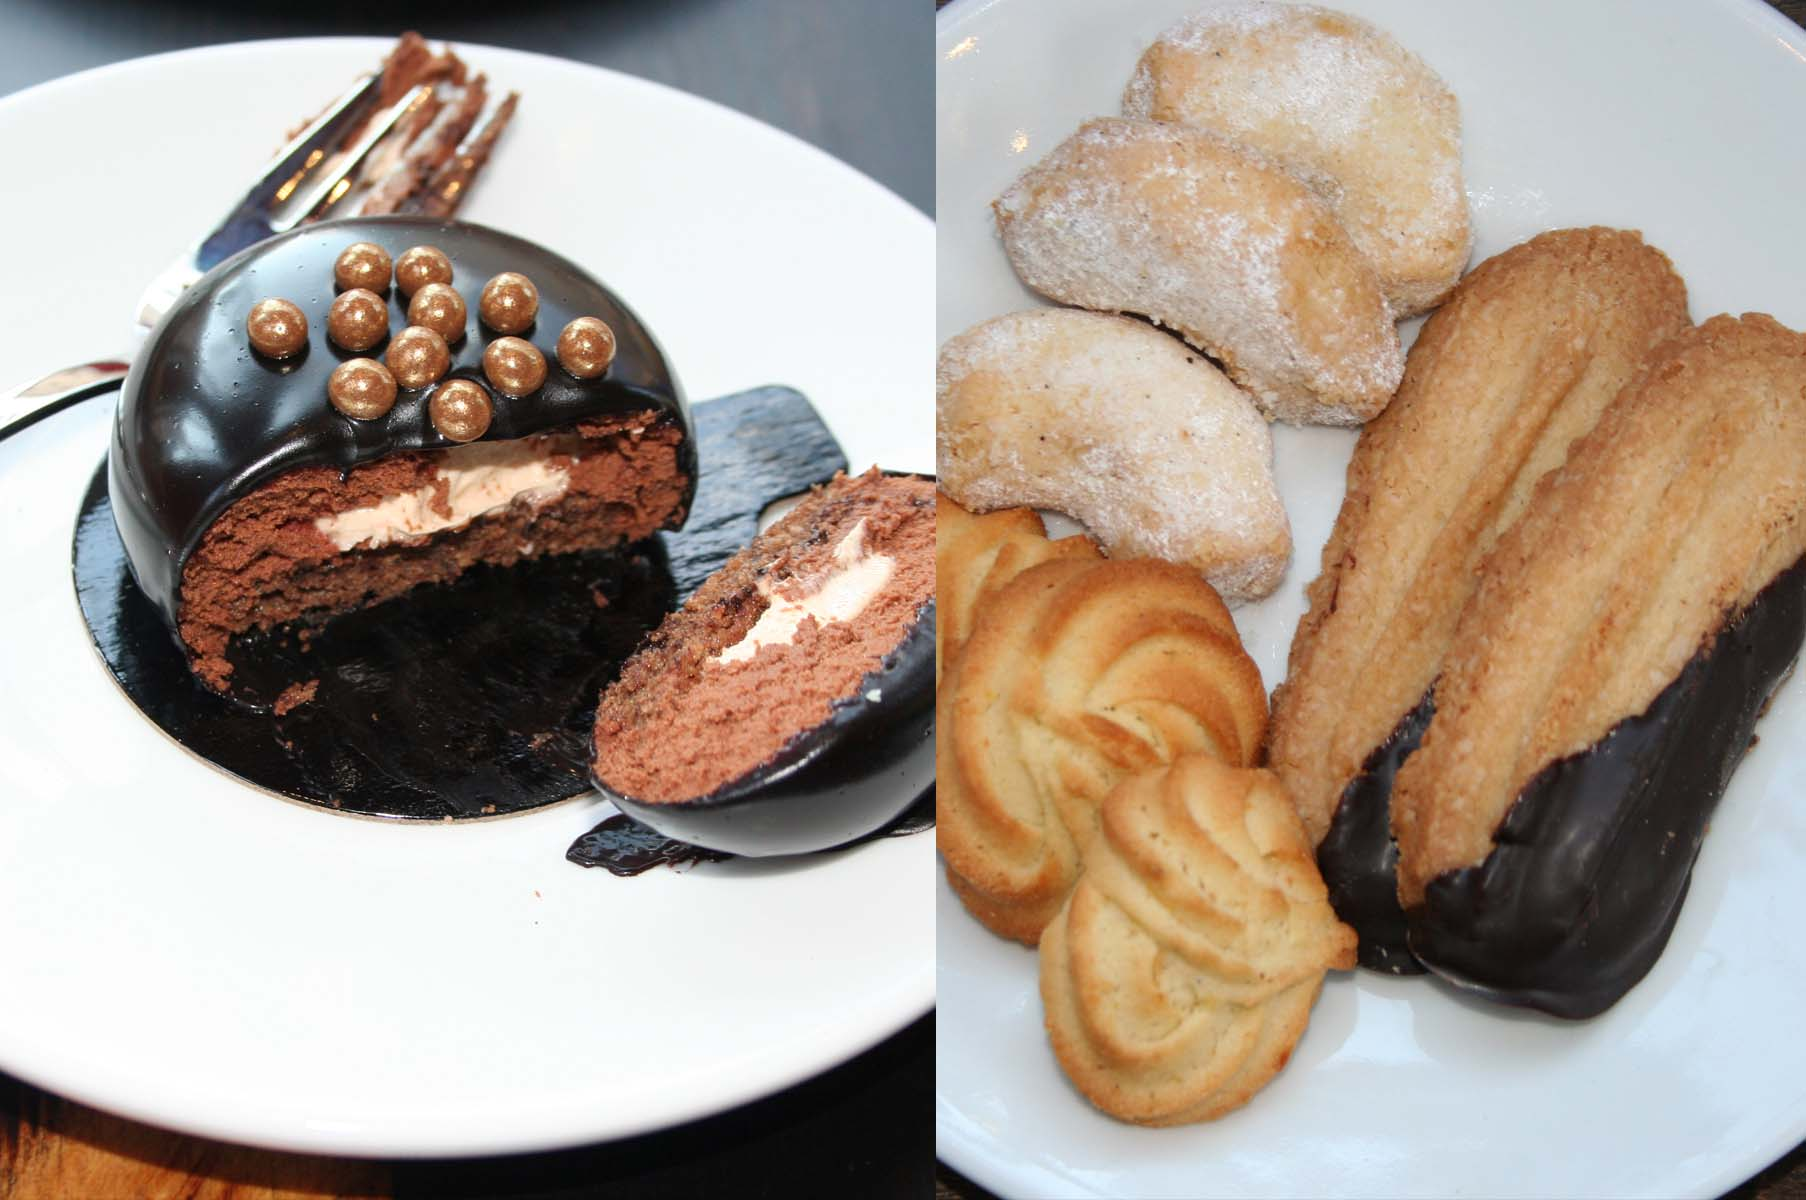 Evening sweets will include sacher torts and Viennese cookies. (Photo: Mark Heckathorn/DC on Heels)